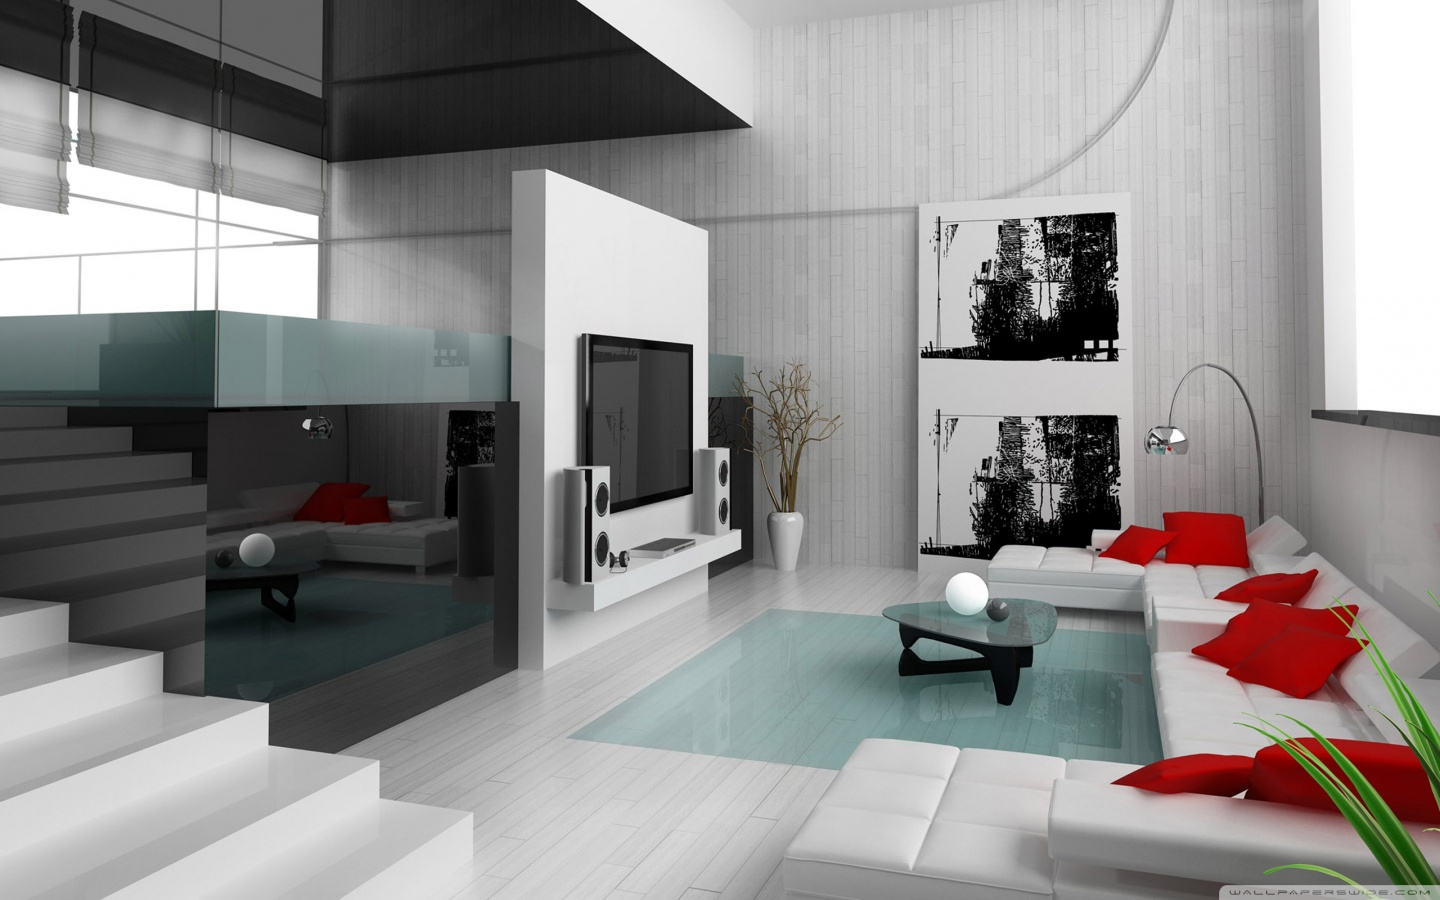 Minimalist interior design imagination art architecture for Modern accents